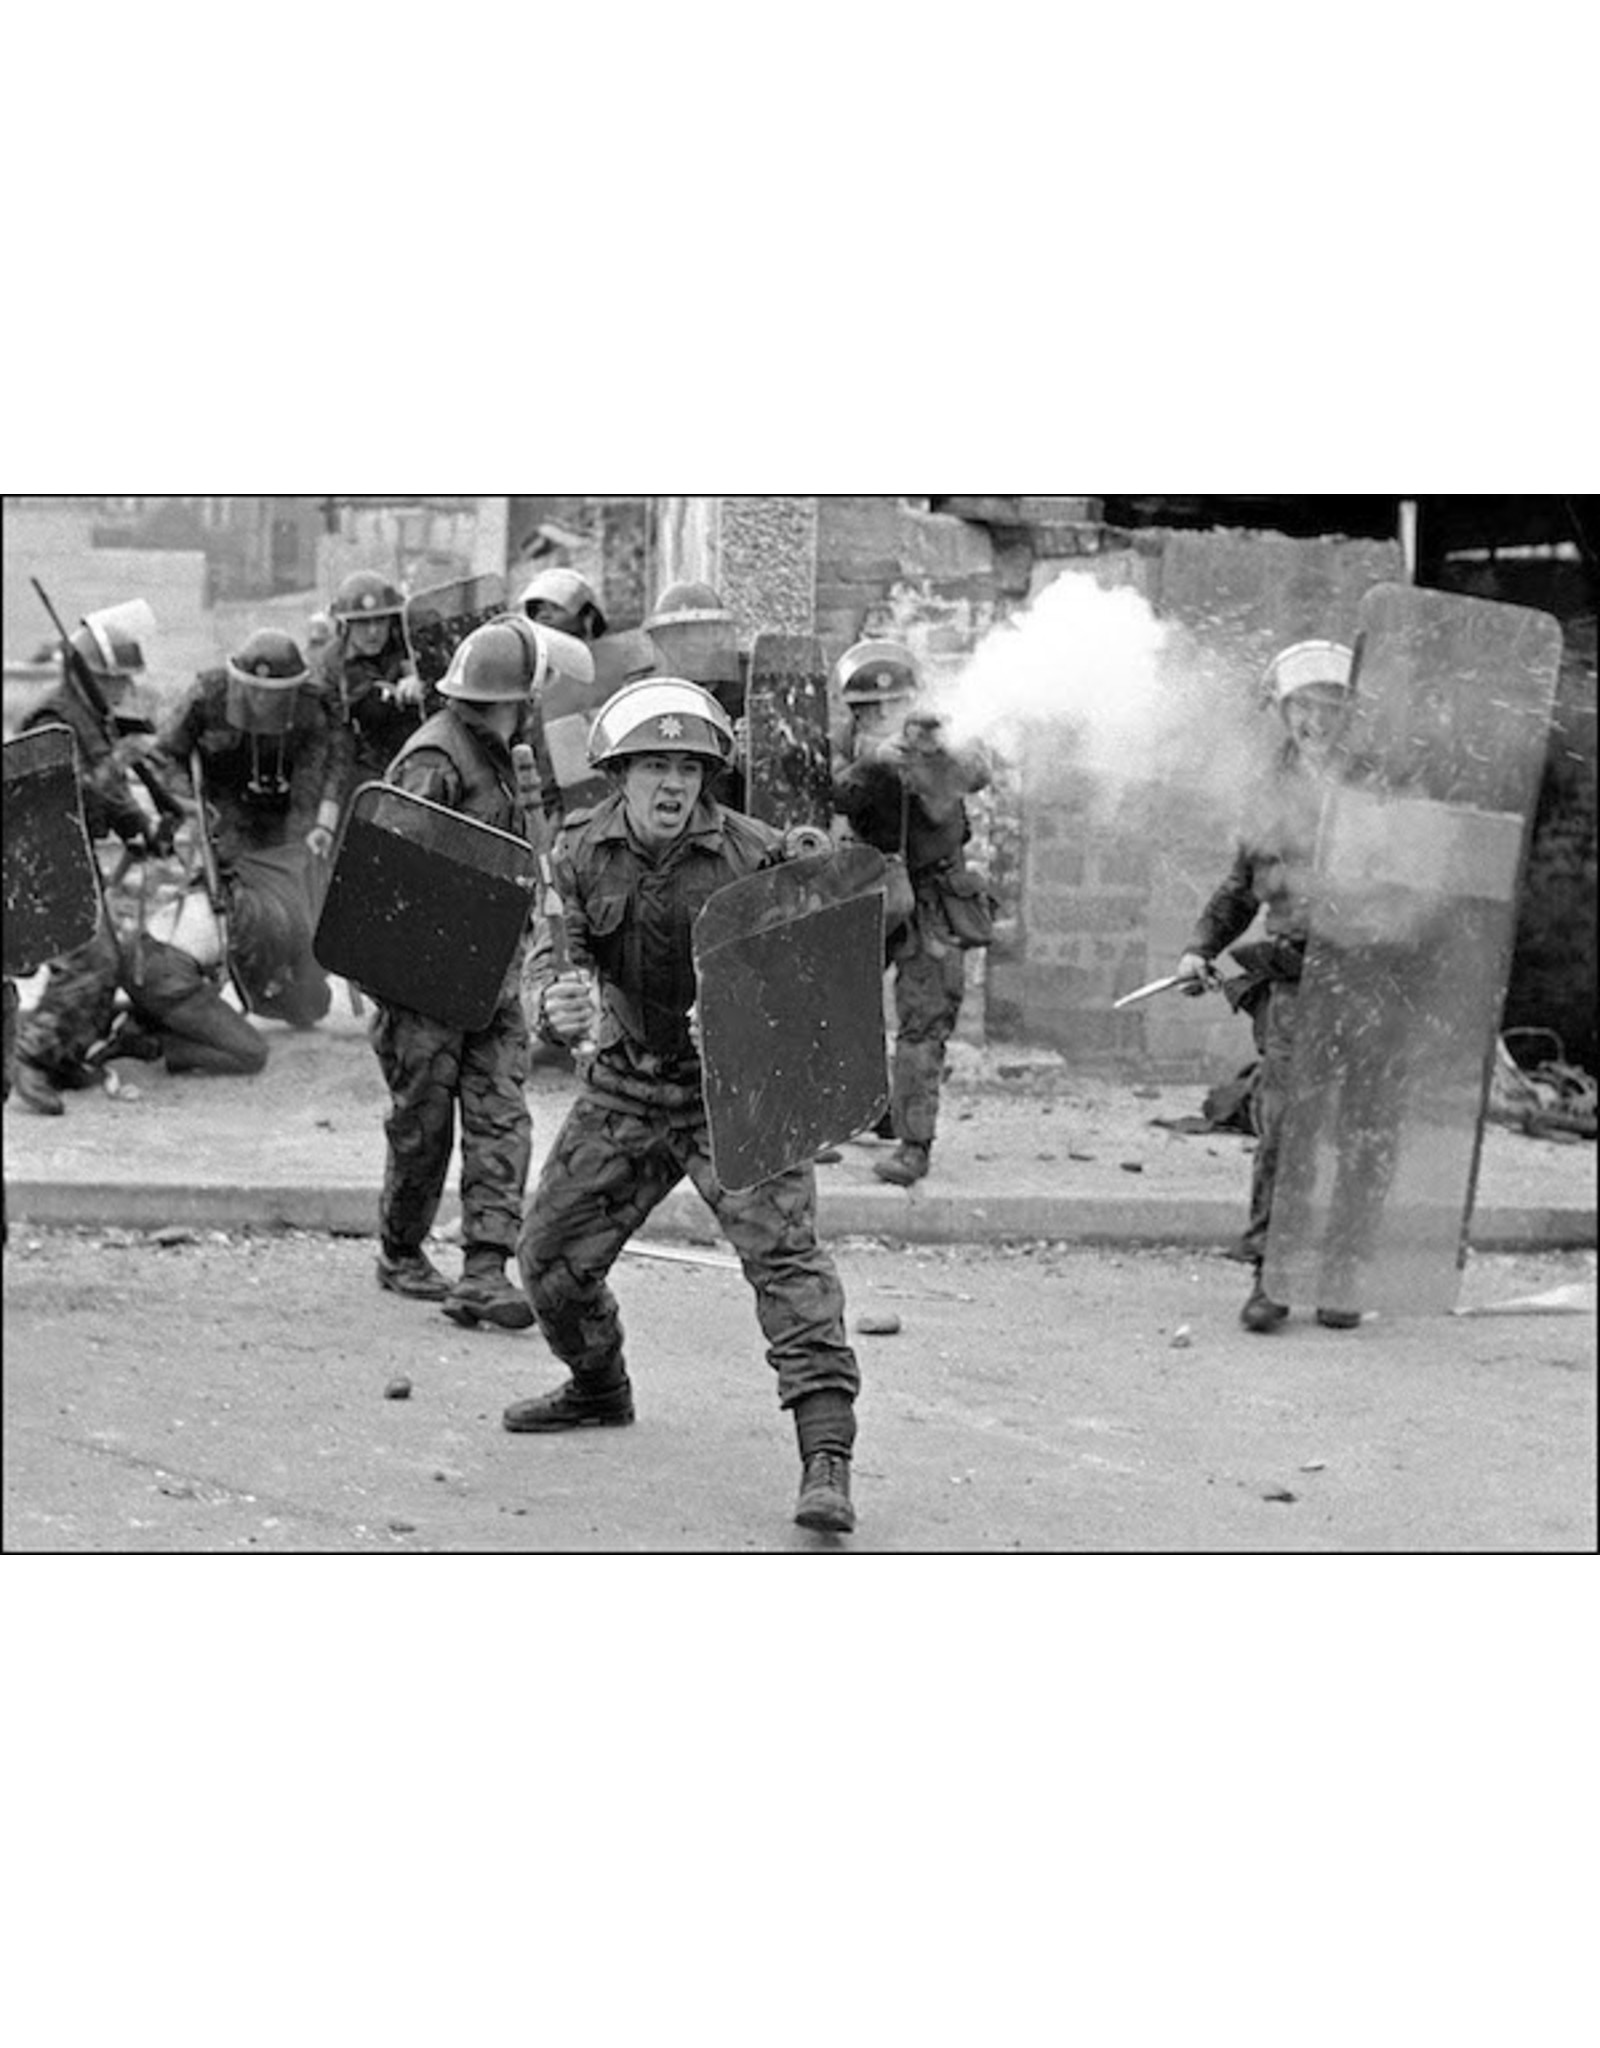 Ian Berry British Soldiers Moving in on the Mob, Londonderry, Northern Ireland. Ian Berry (34)